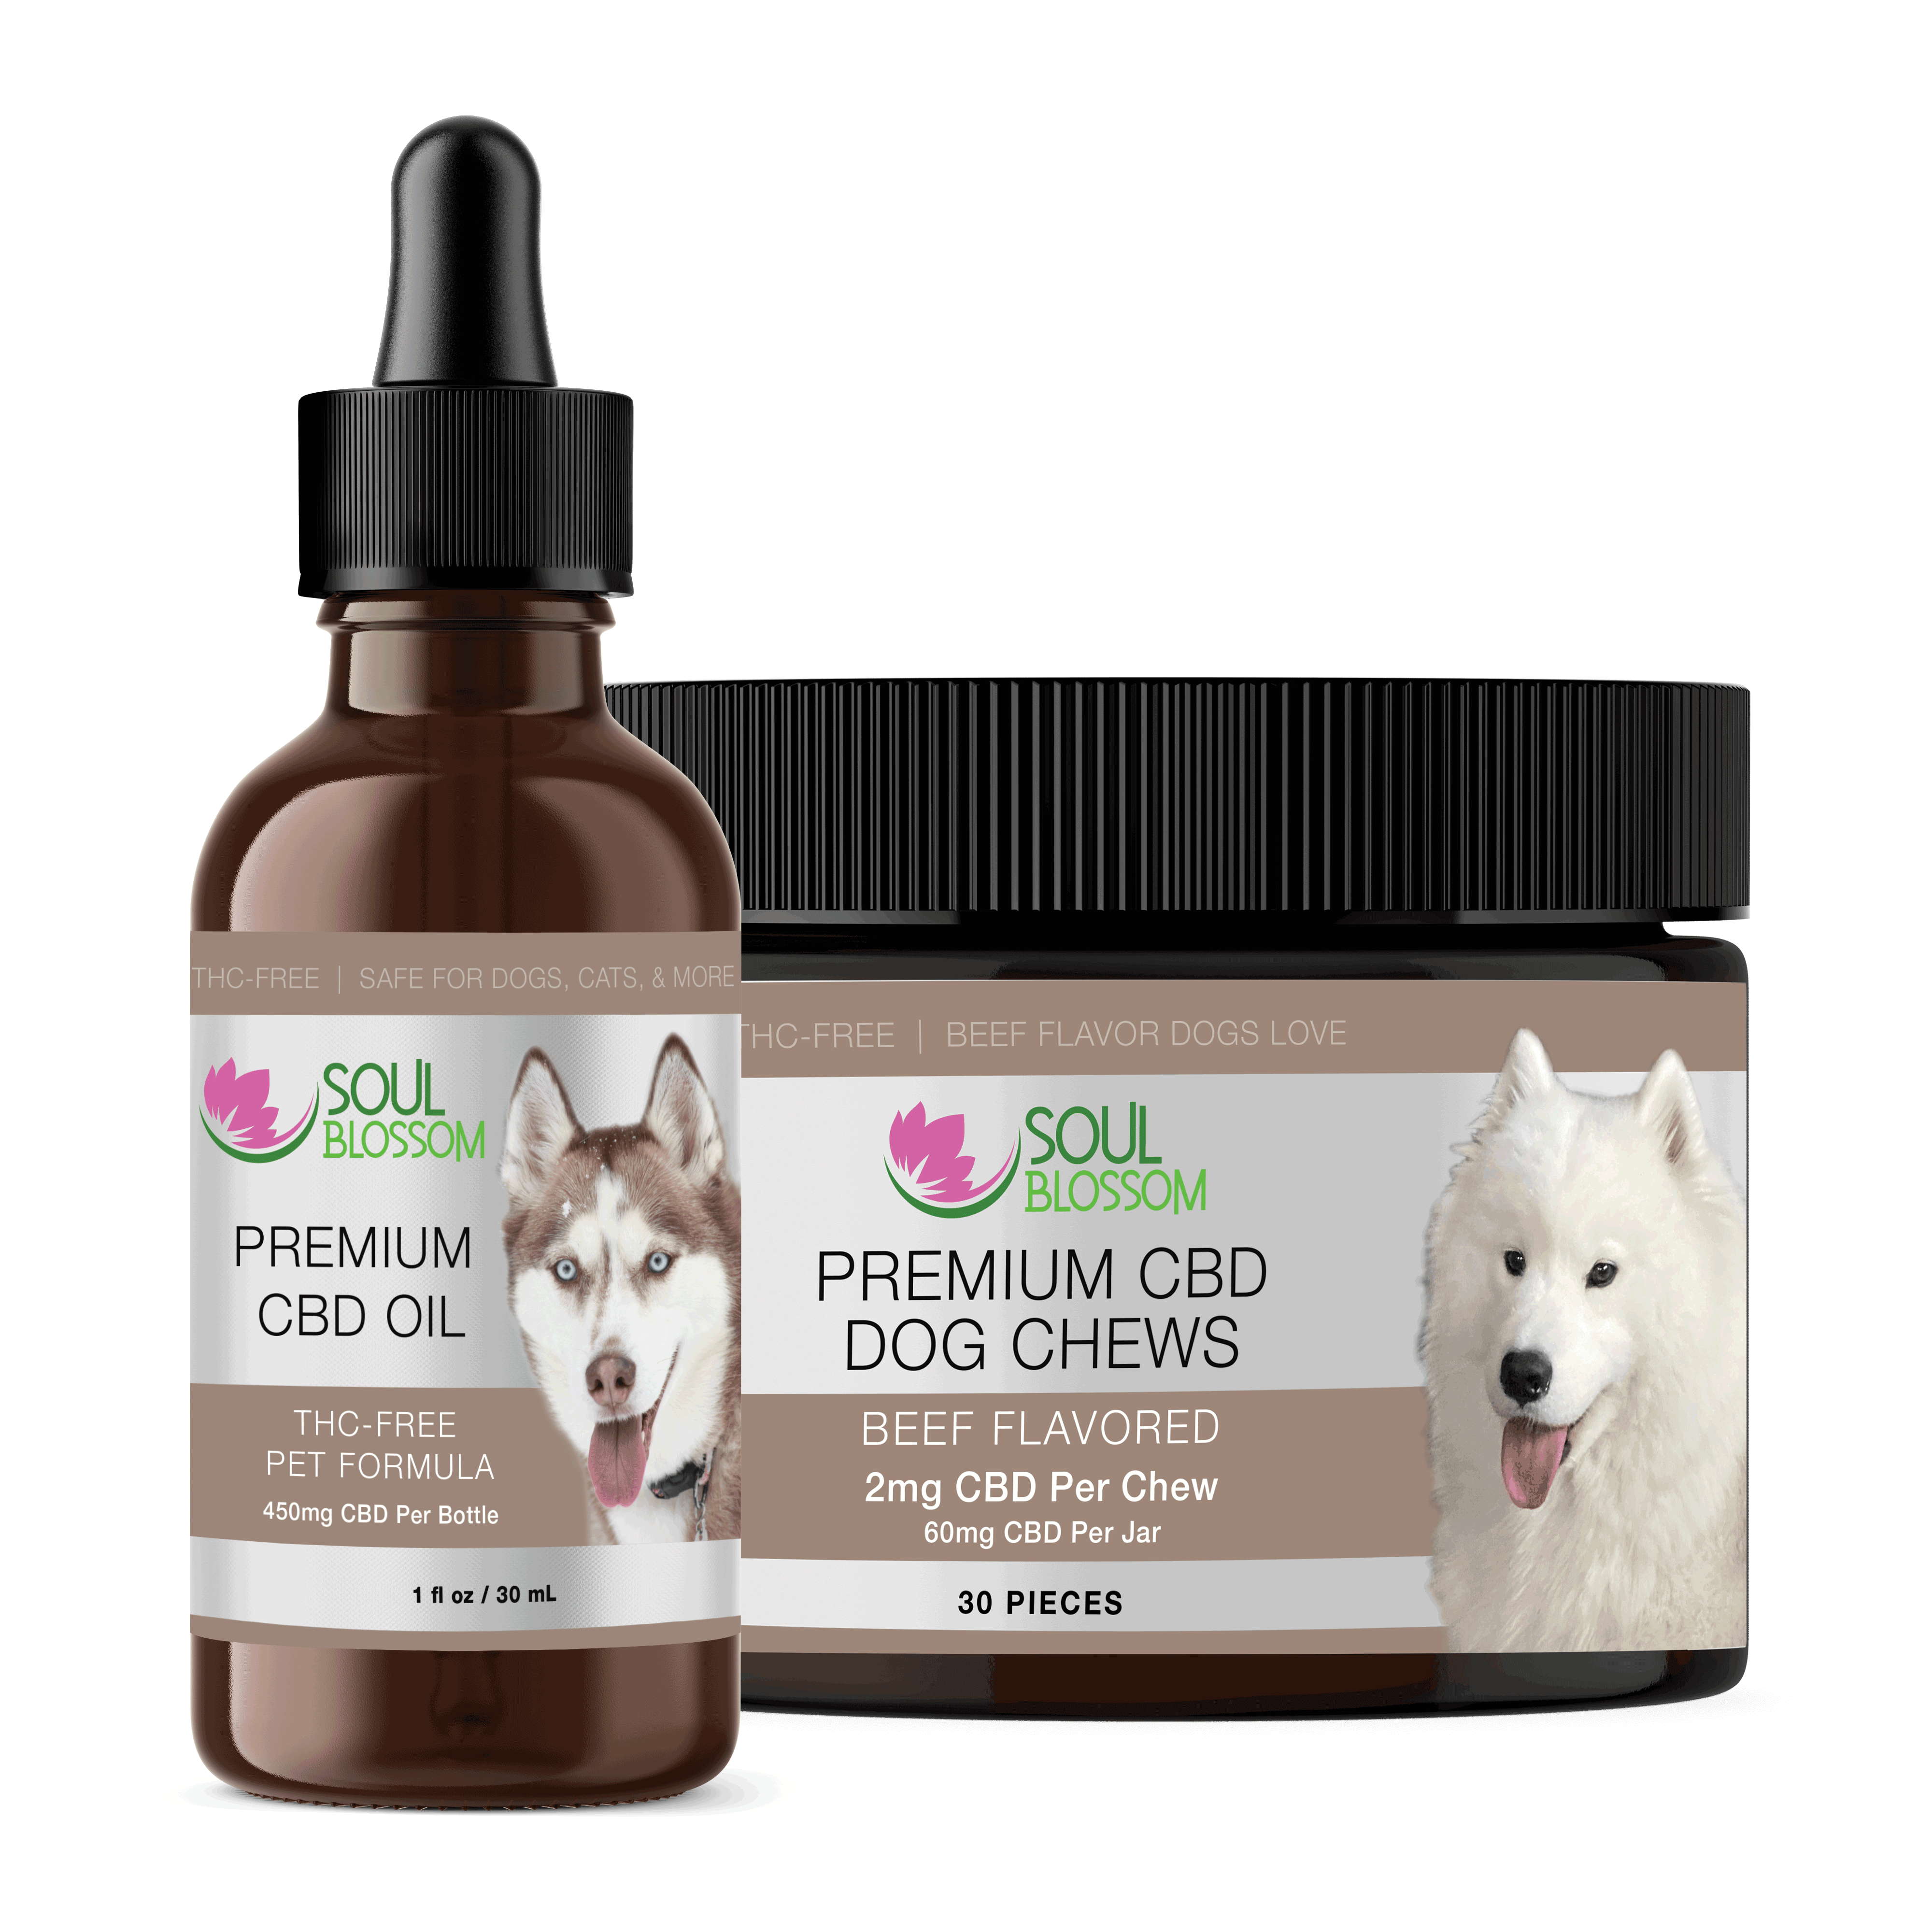 Soul Blossom Pet Products